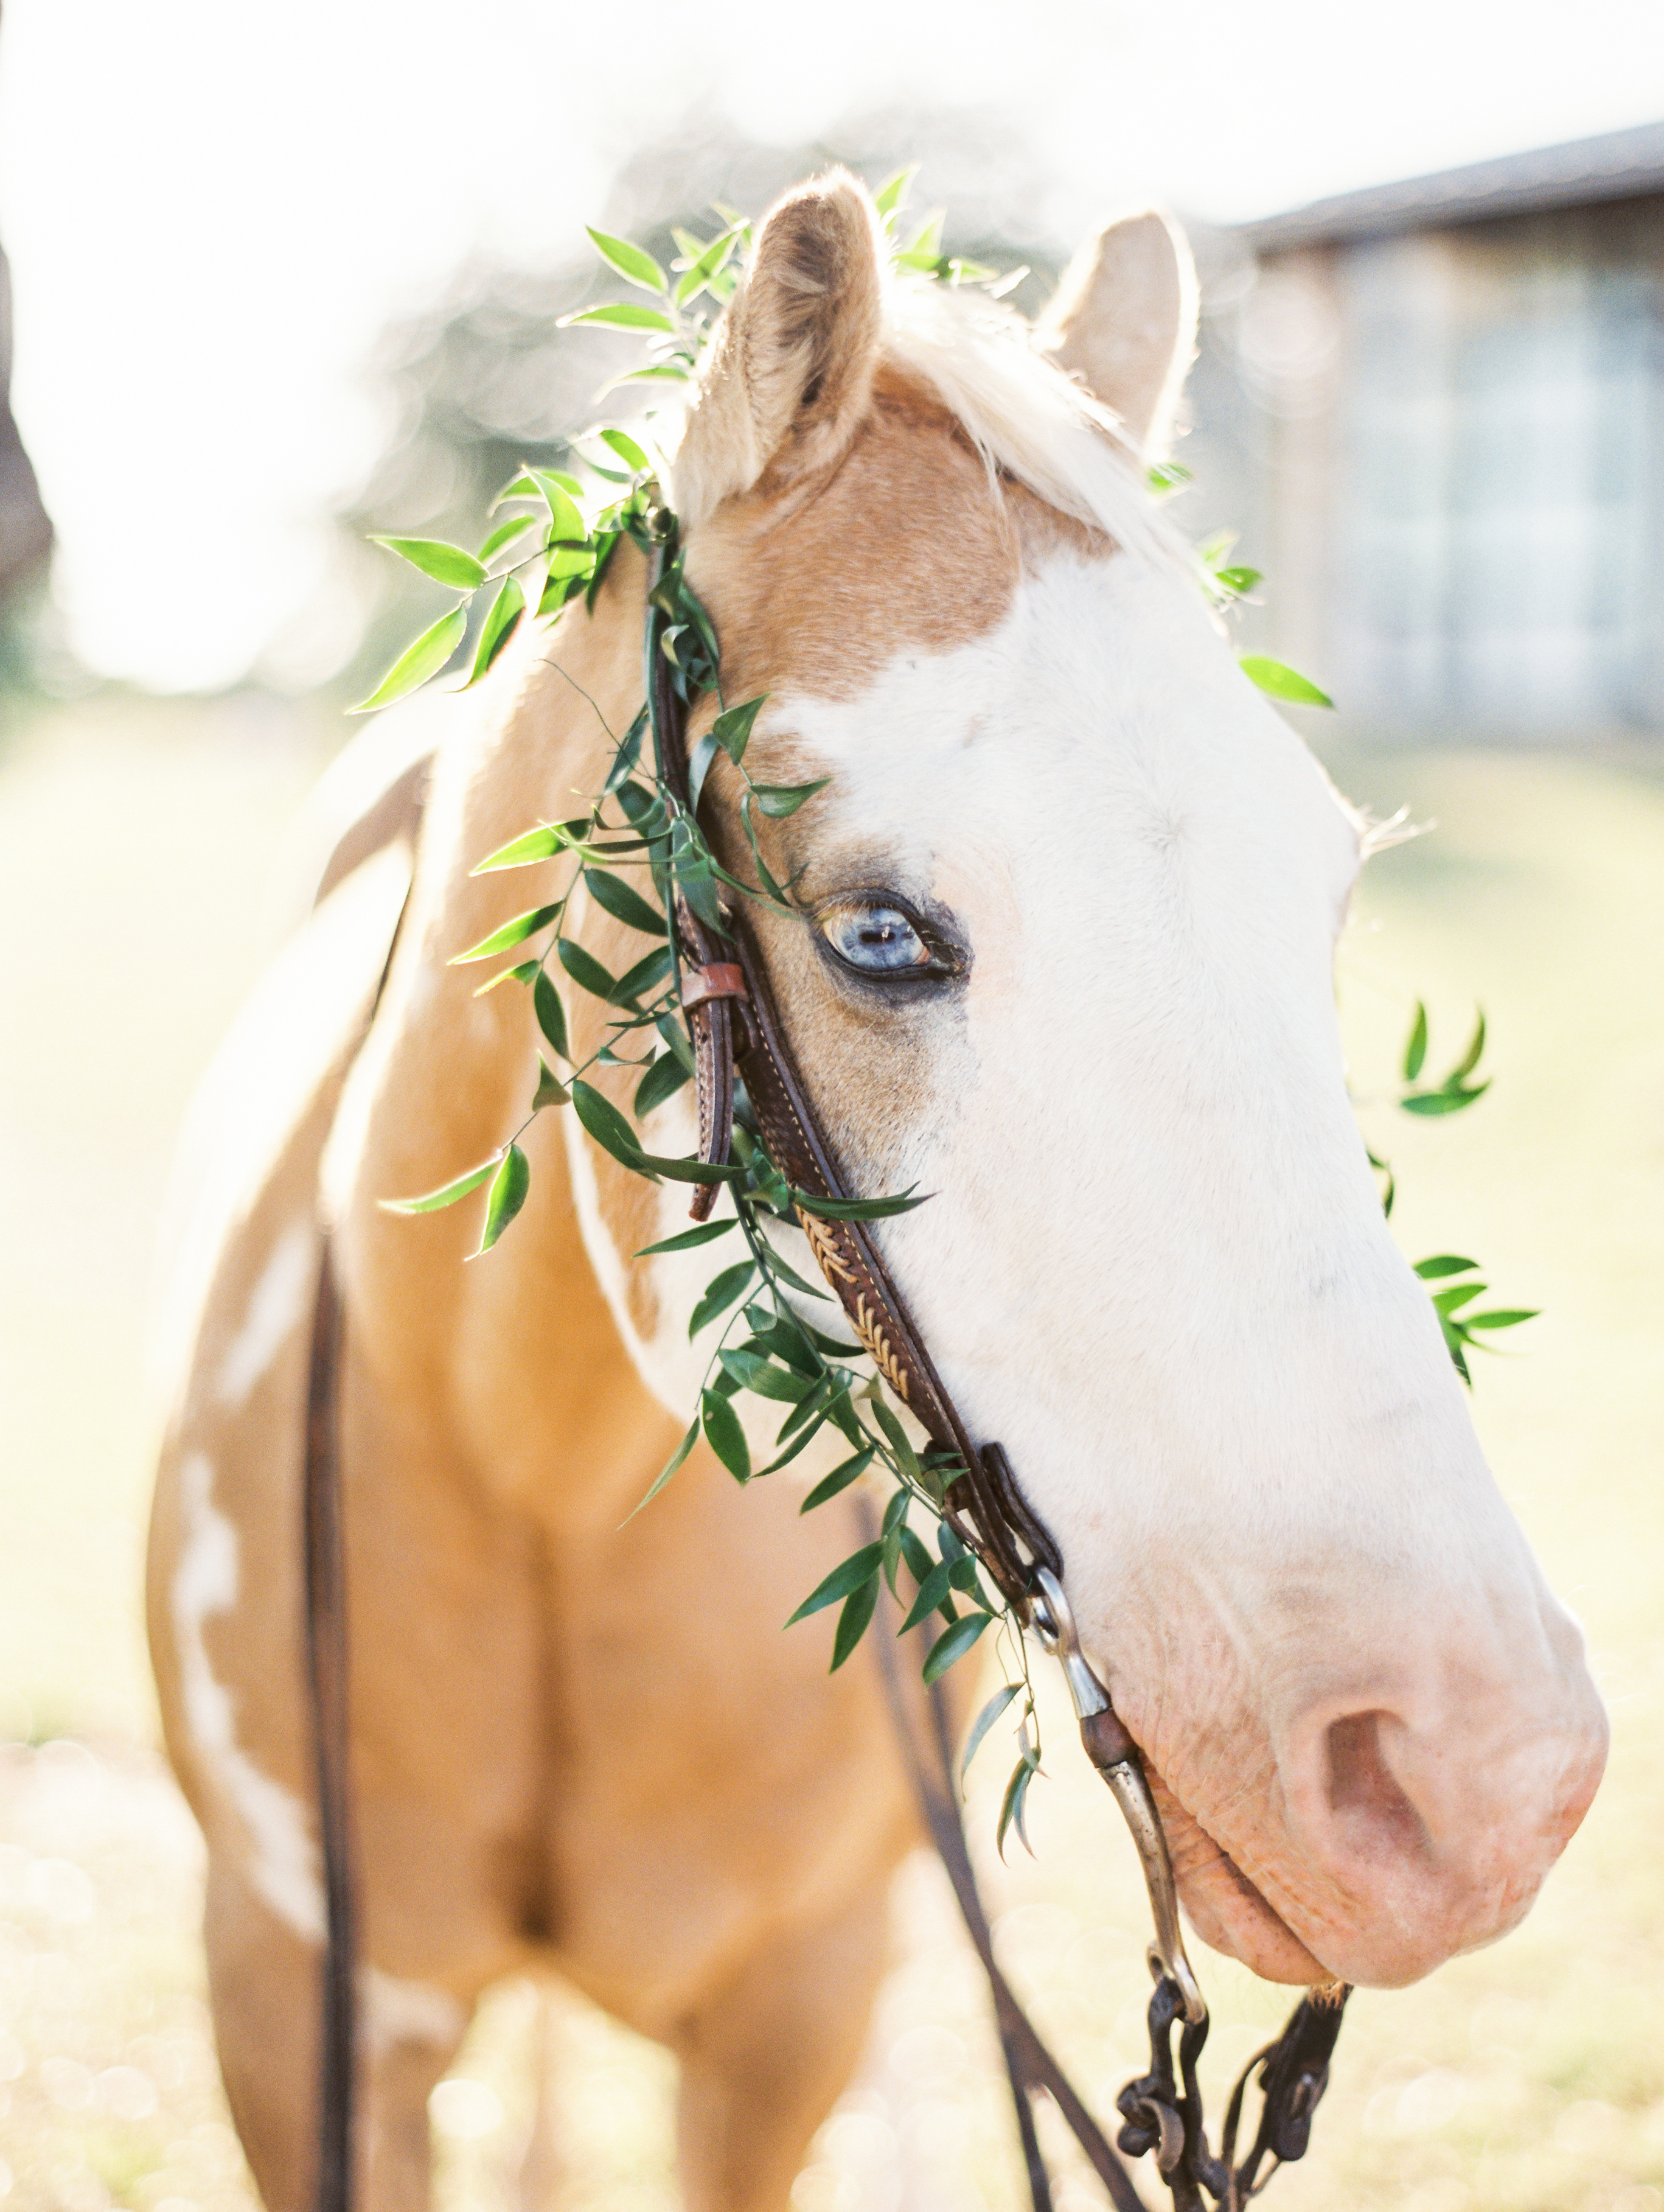 beautiful horse by Kristen Kilpatrick photography— via @Wandeleur